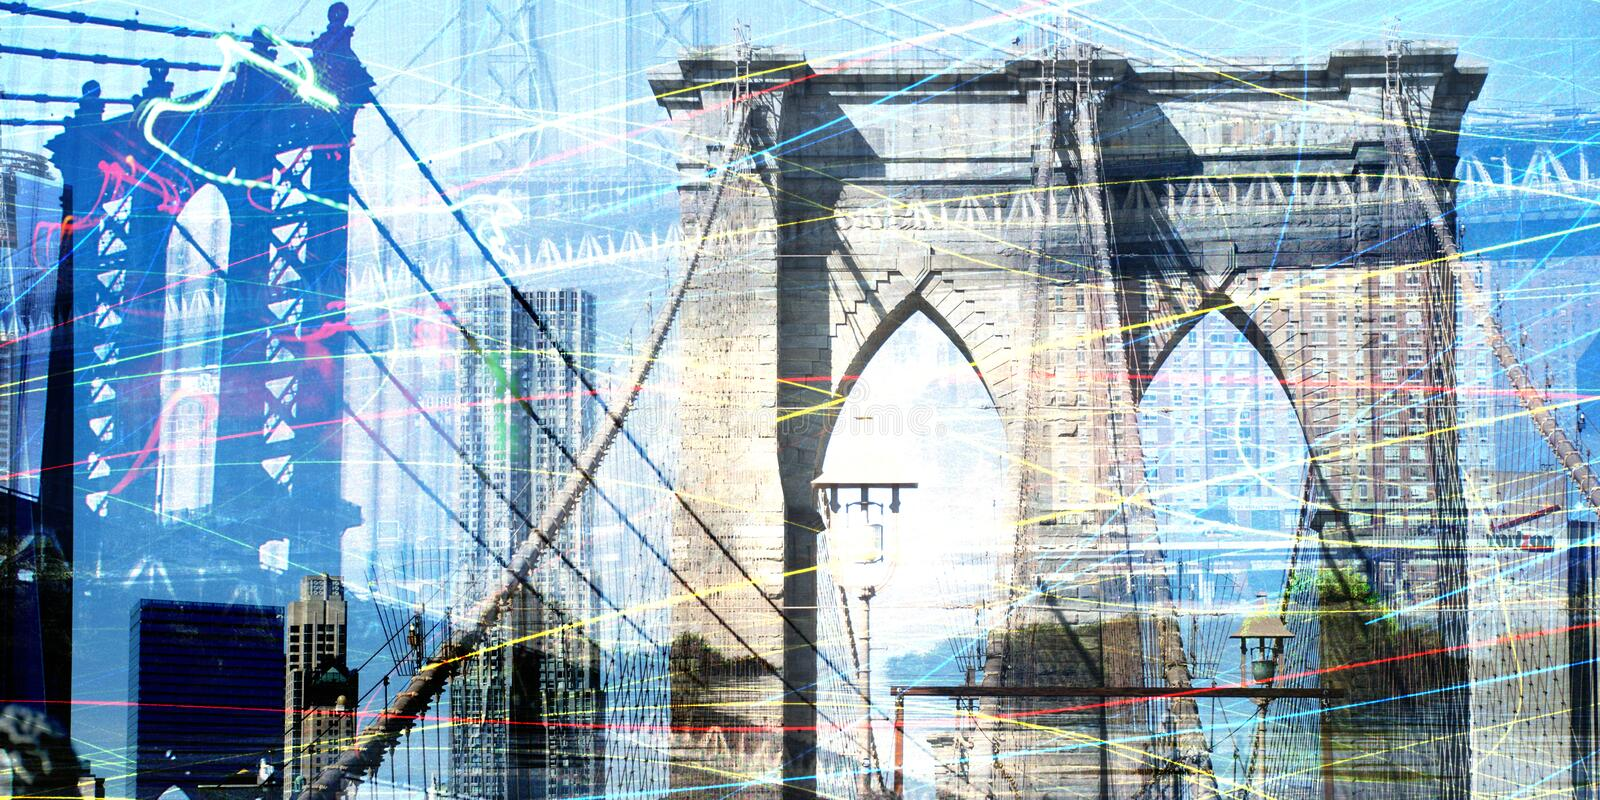 NY Brooklyn brug royalty-vrije illustratie